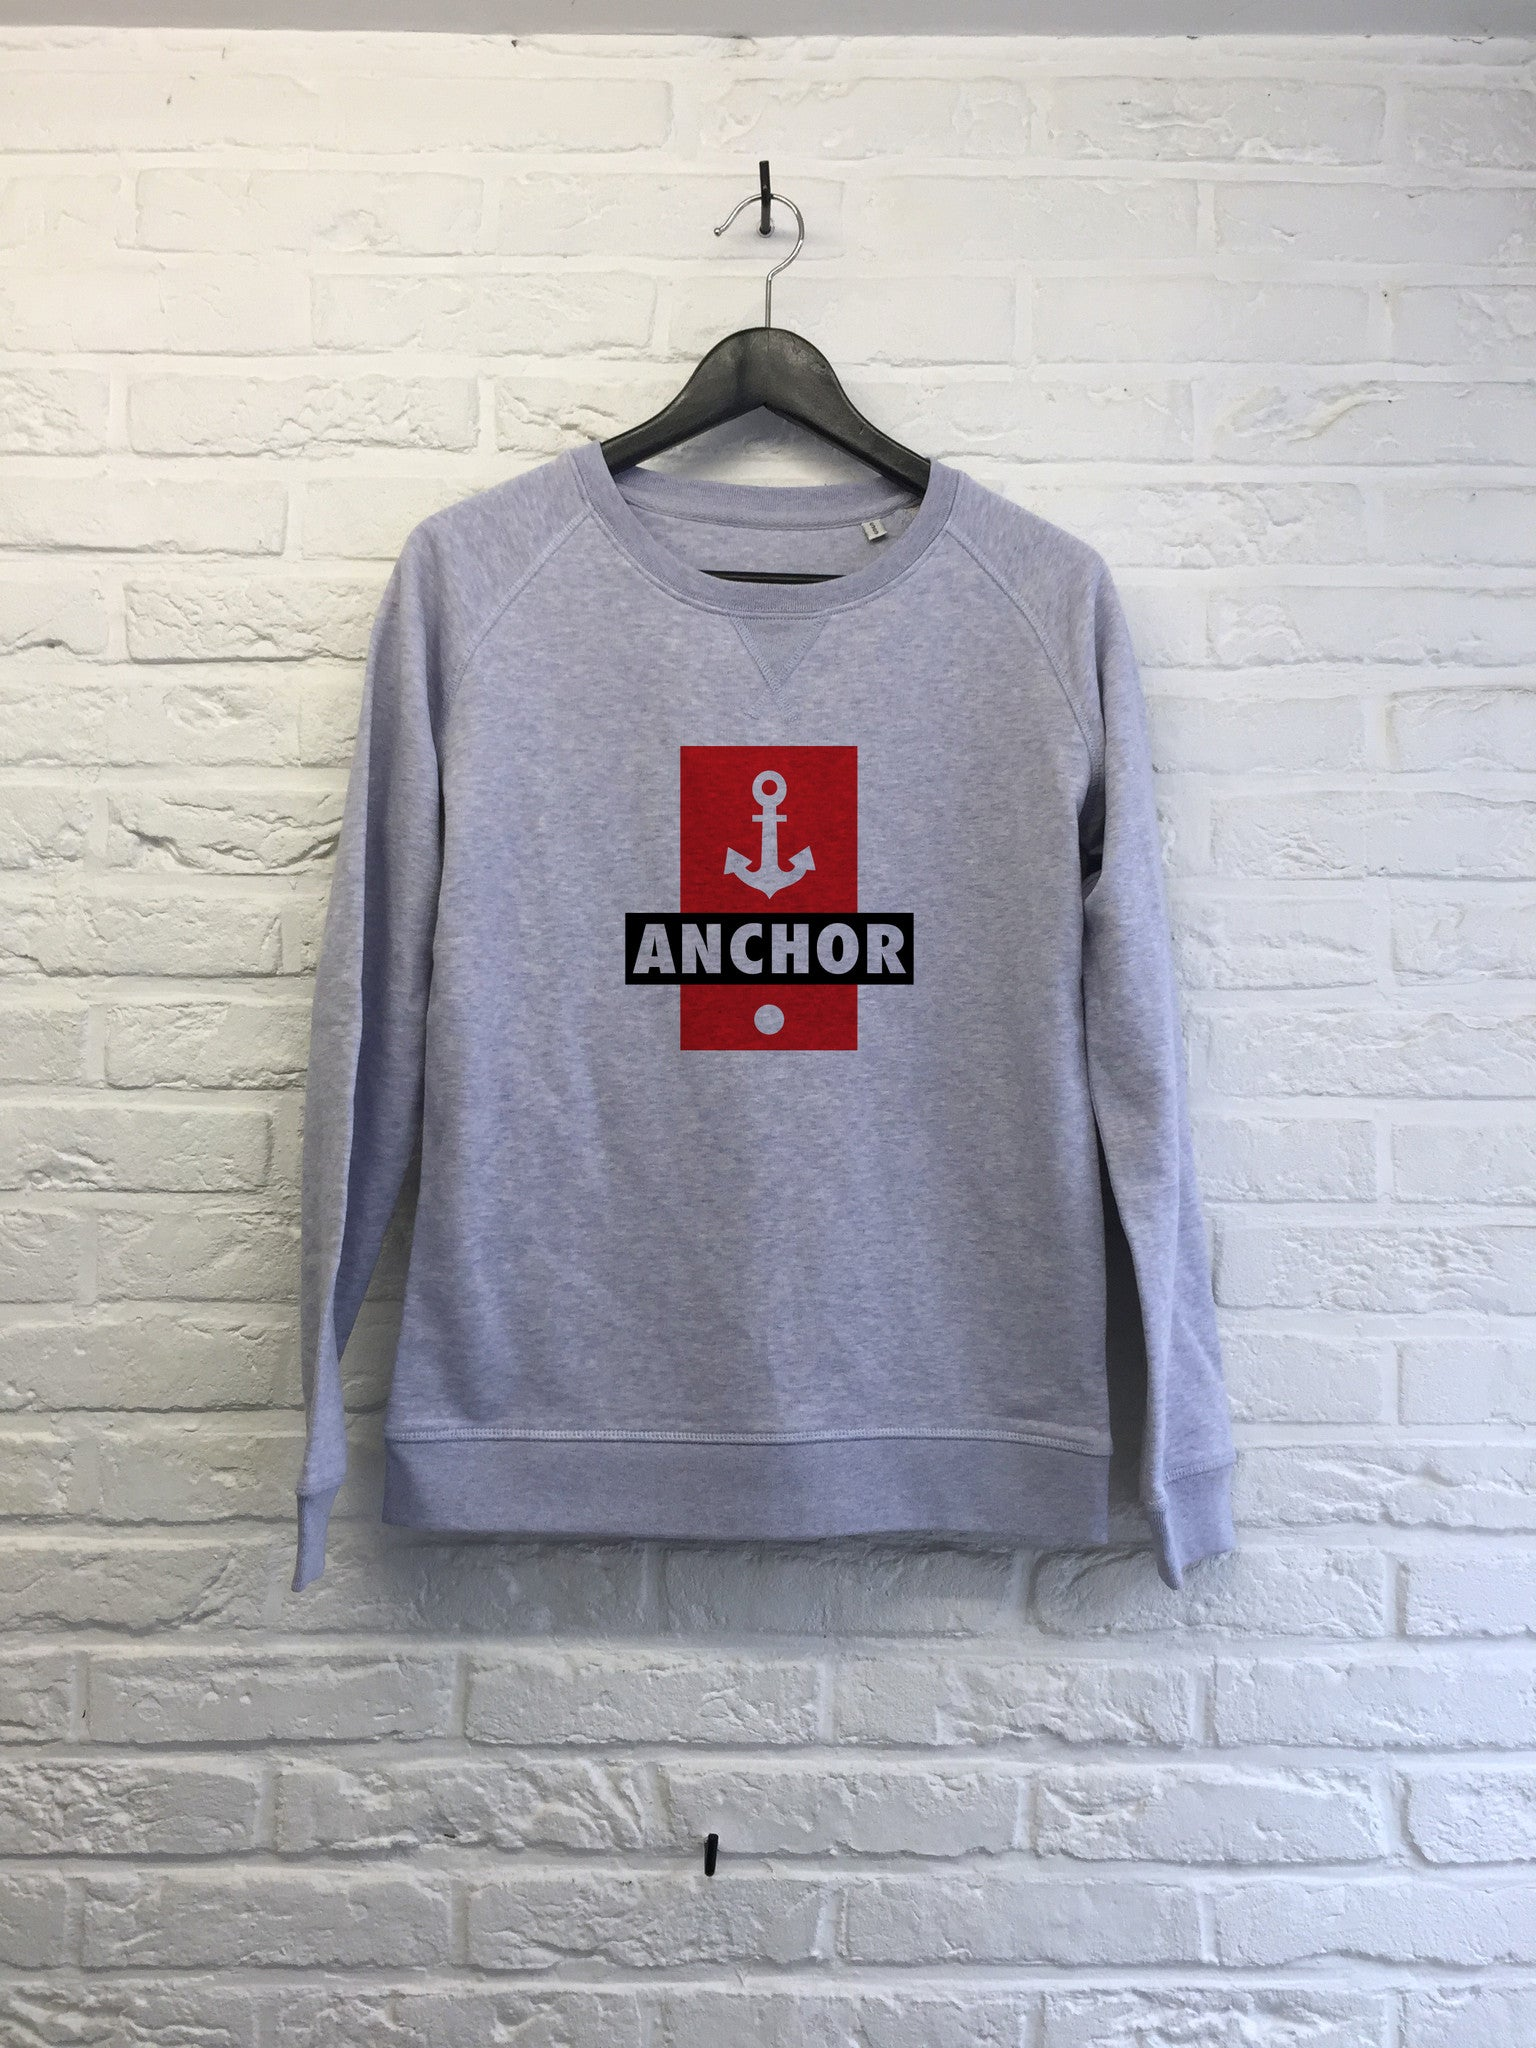 Anchor Anchor 2 - Sweat - Femme-Sweat shirts-Atelier Amelot